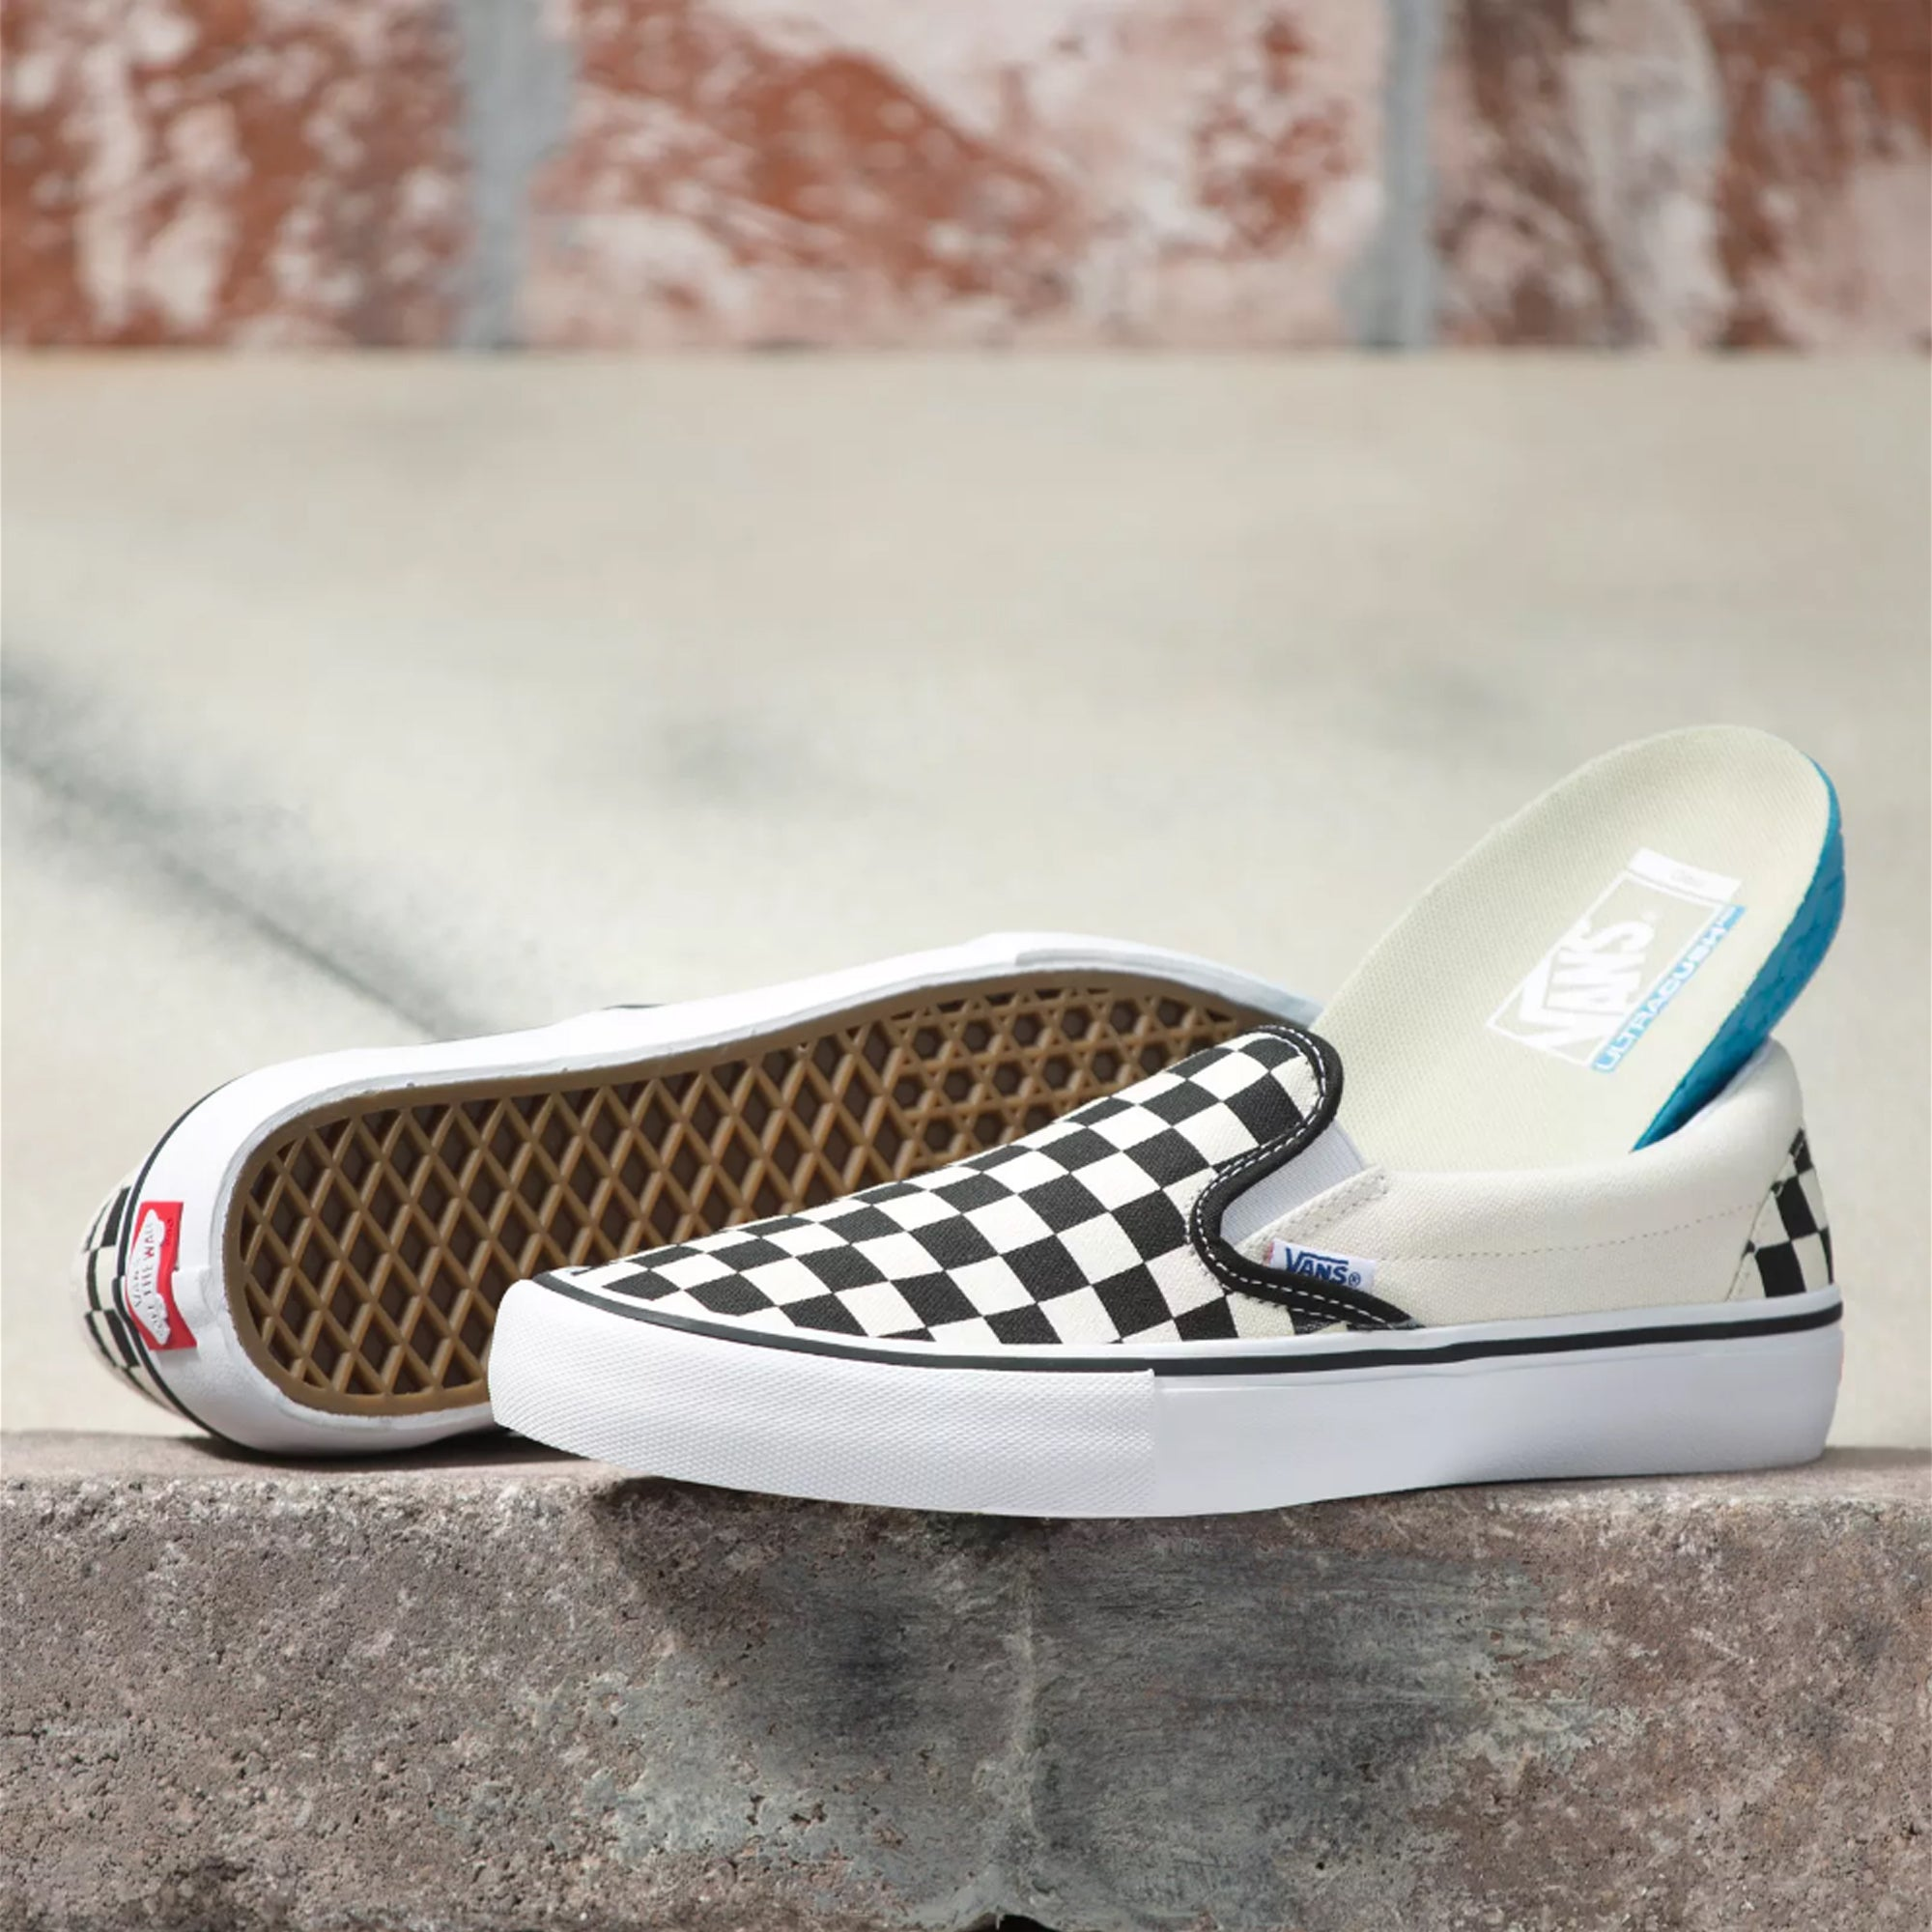 Vans Slip-On Pro Men's Shoe